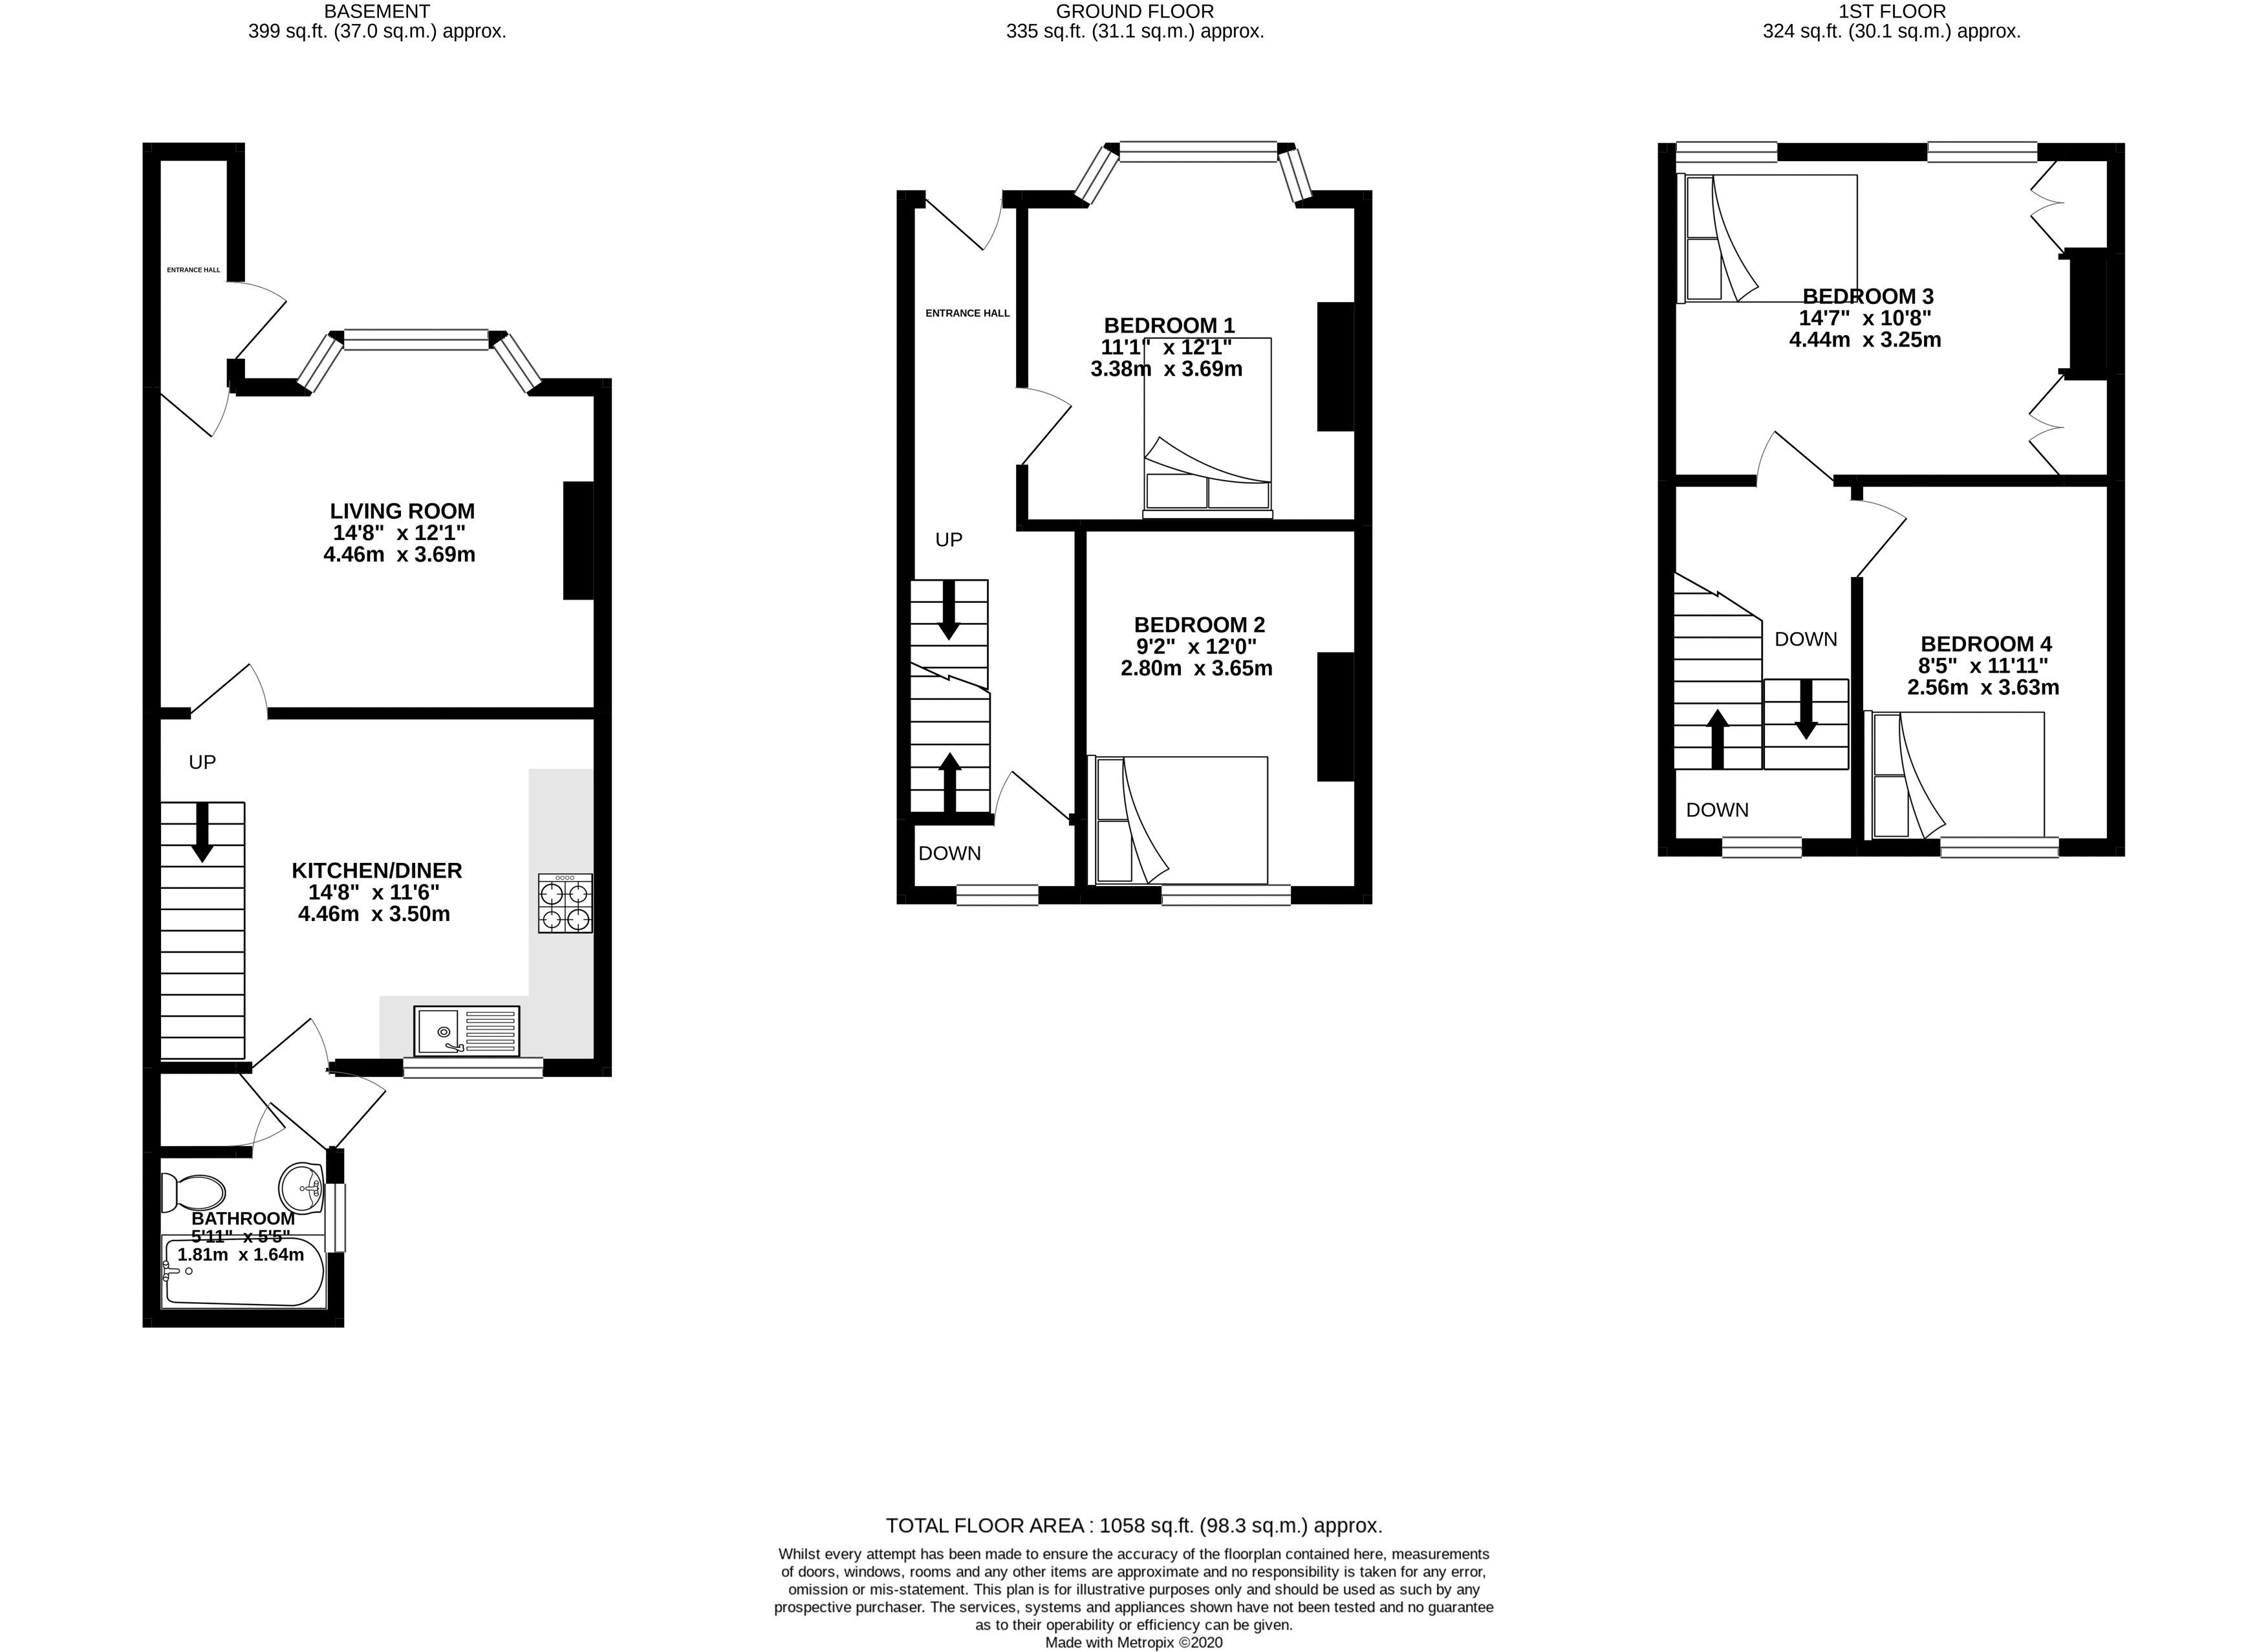 Floor plans for Mayo Road, Brighton property for sale in Lewes Road South, Brighton by Coapt